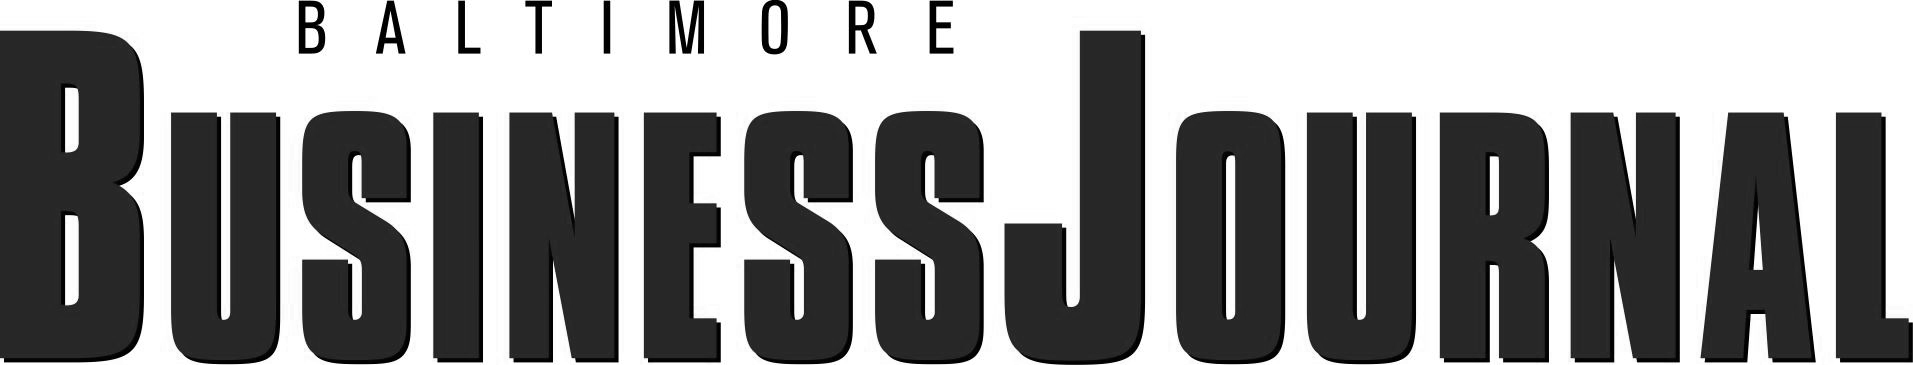 BaltimoreBusinessJournal logo.png